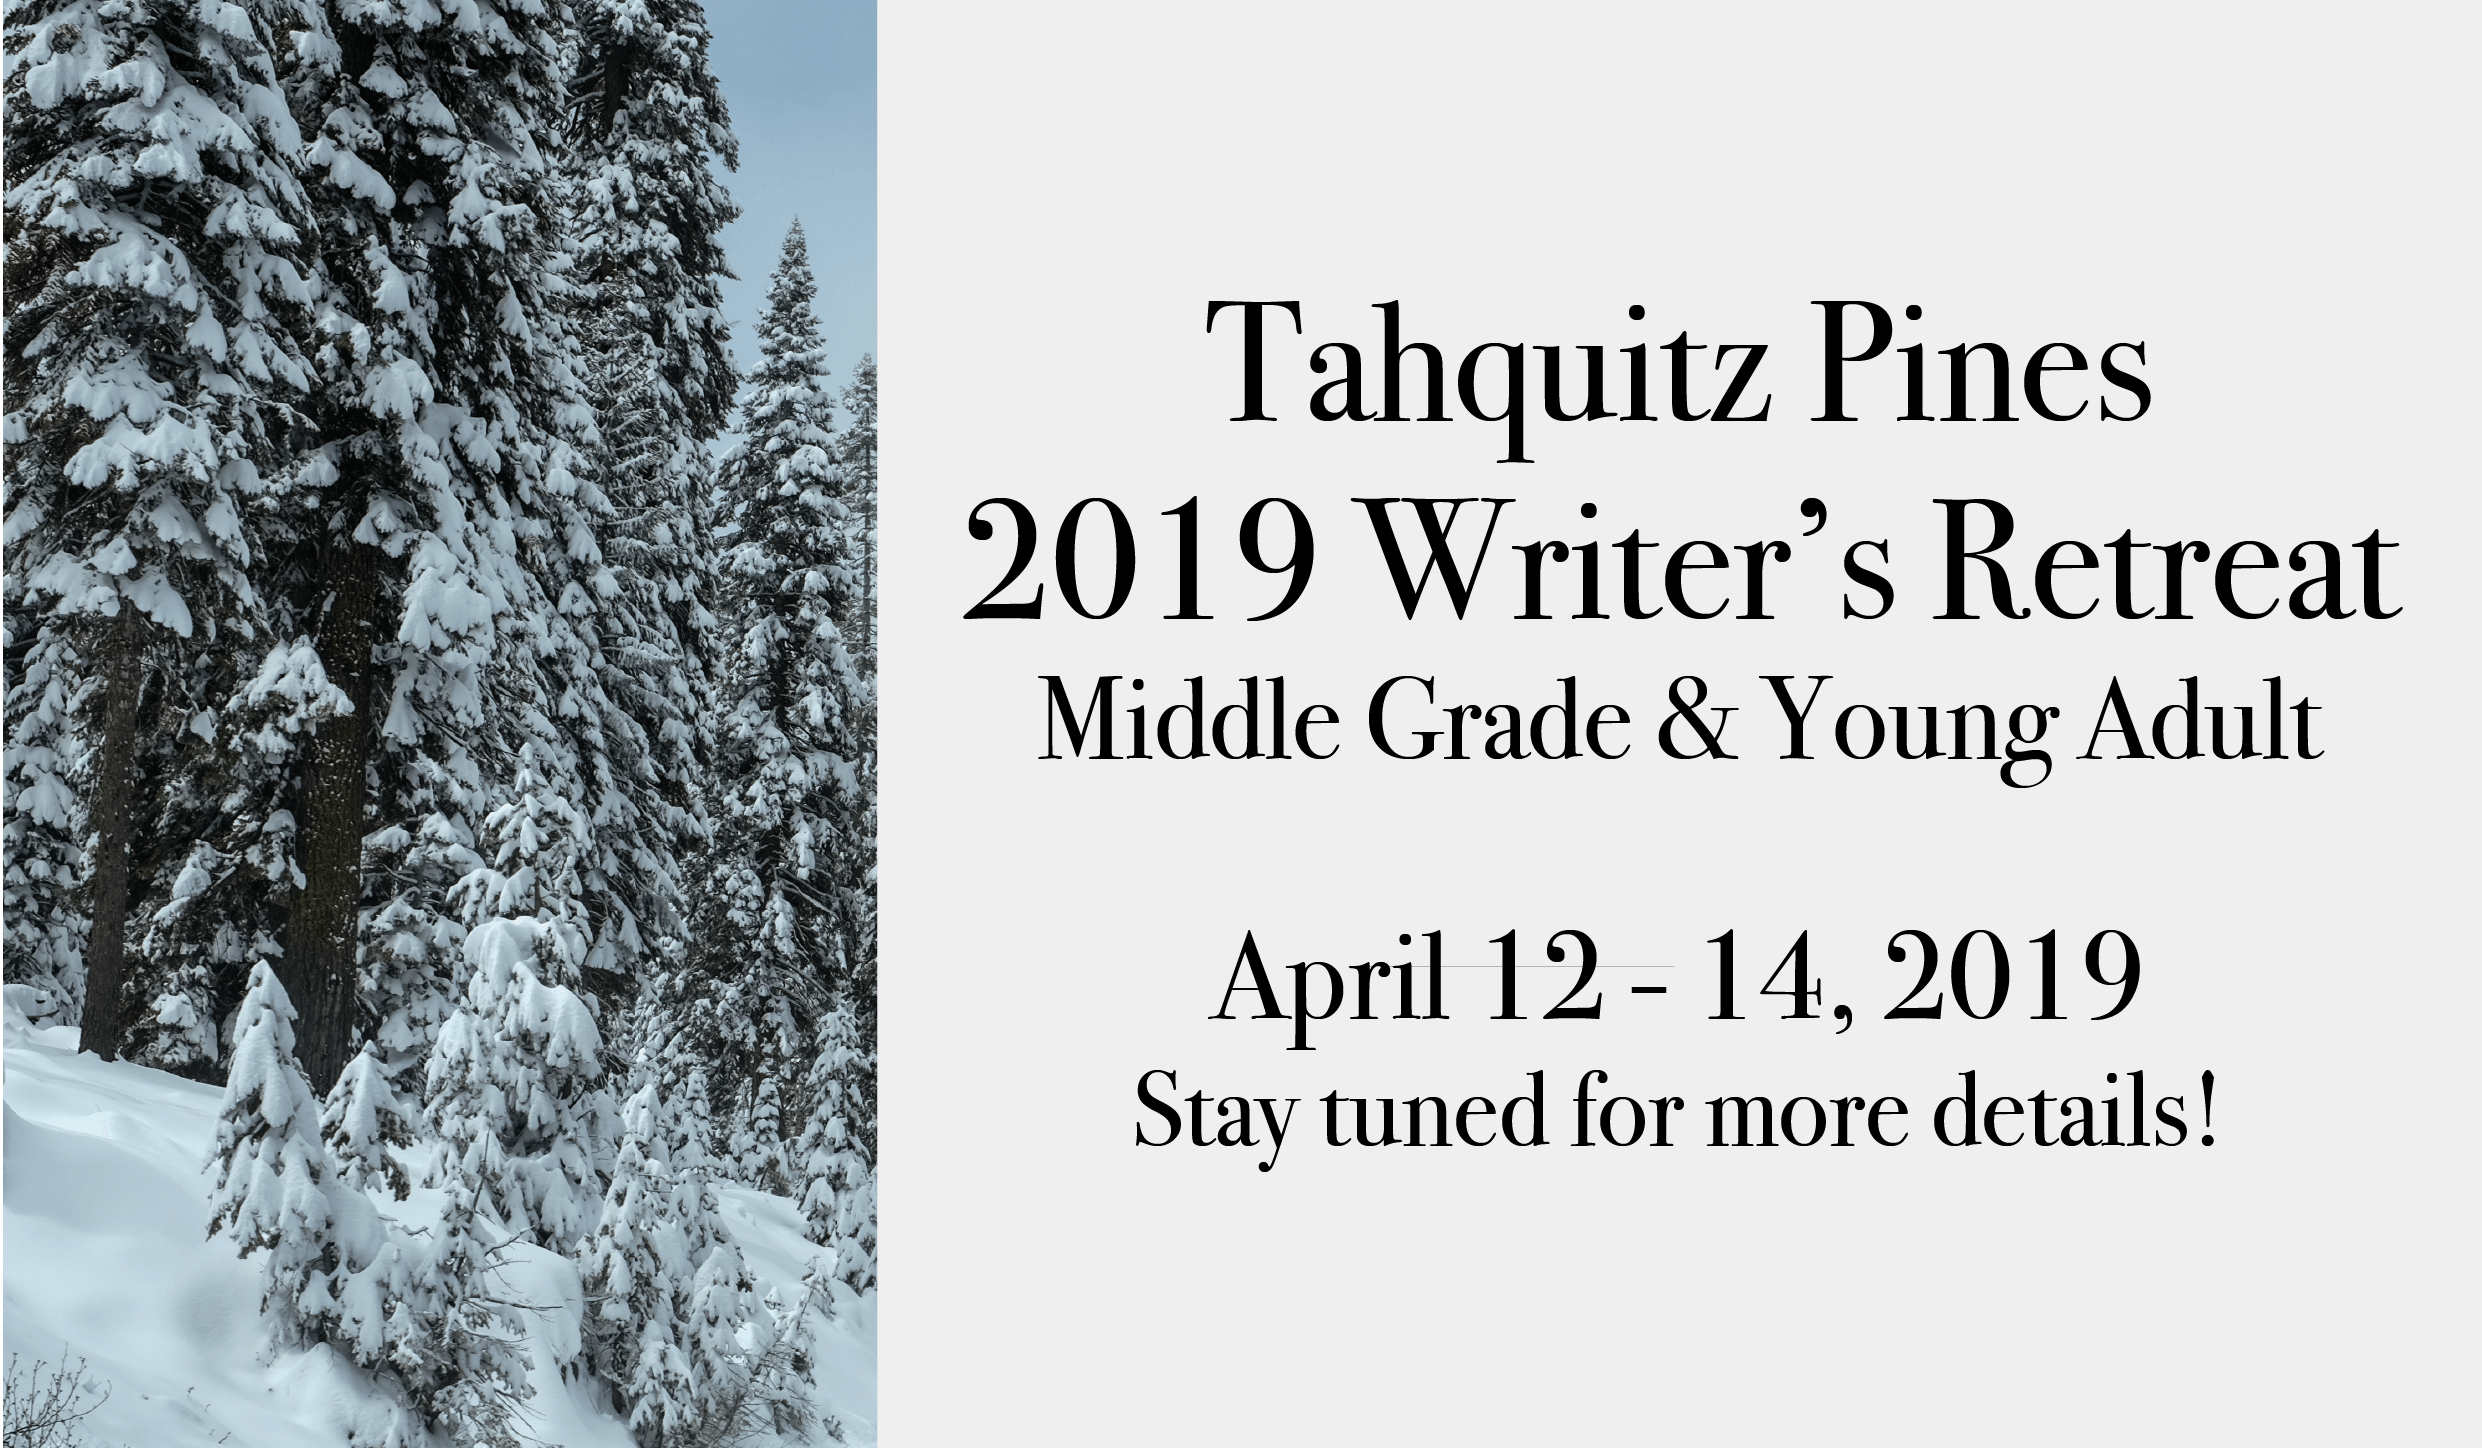 2019 Spring Writer's Retreat Middle Grade & Young Adult Tahquitz Pines April 12 - 14, 2019 Stay tuned for more details!